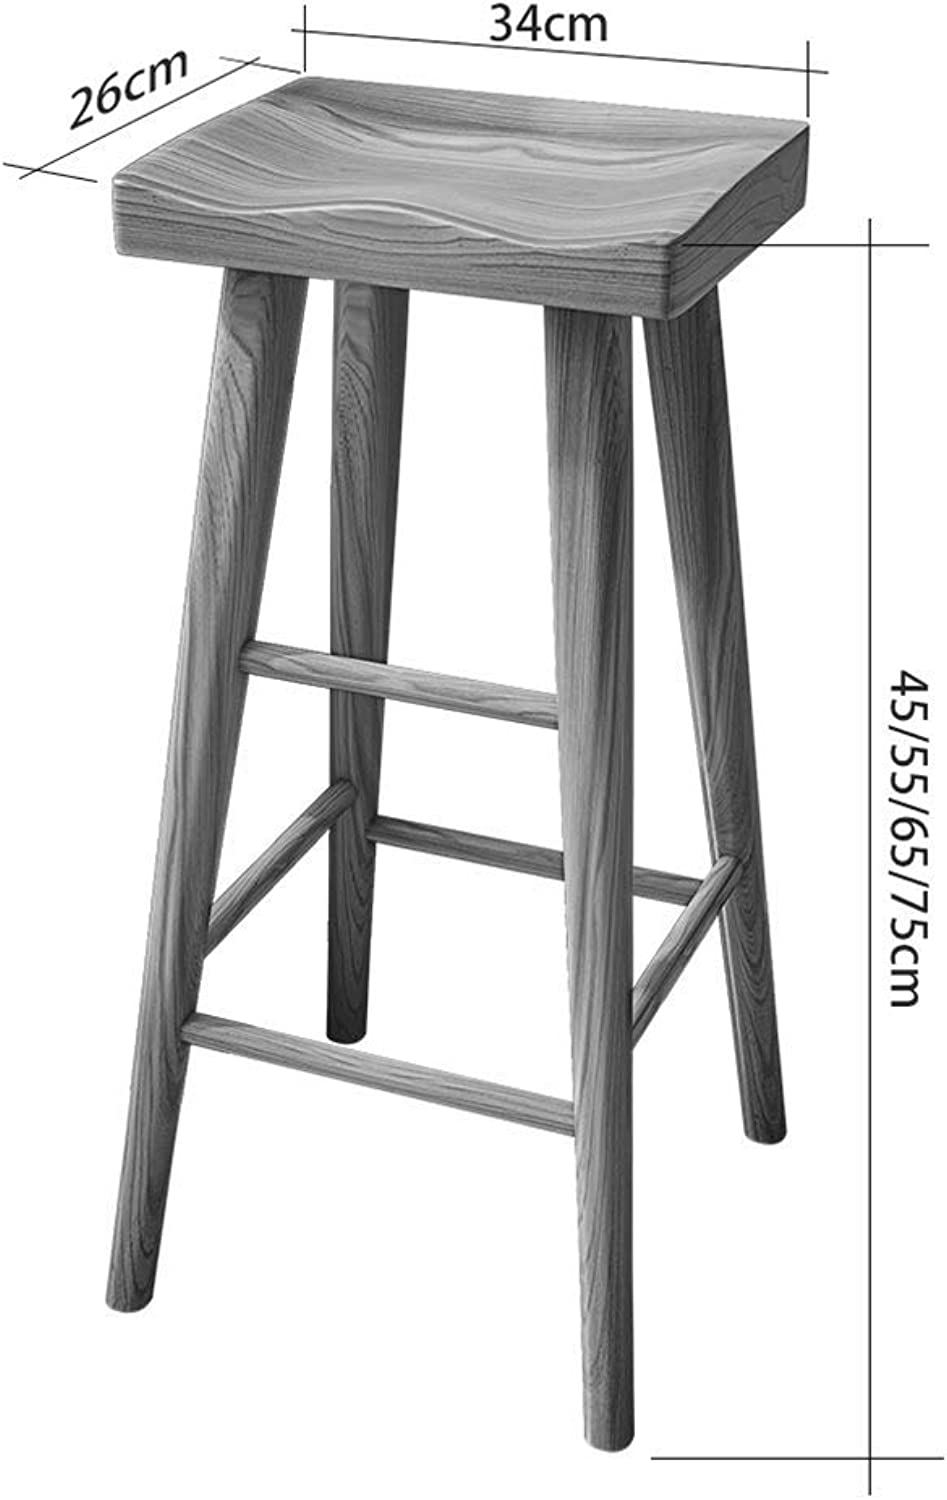 JZX Footstool, Work Bench, Beauty Stool, Shower Stool, Stool, High Stool, Real Bar Stool